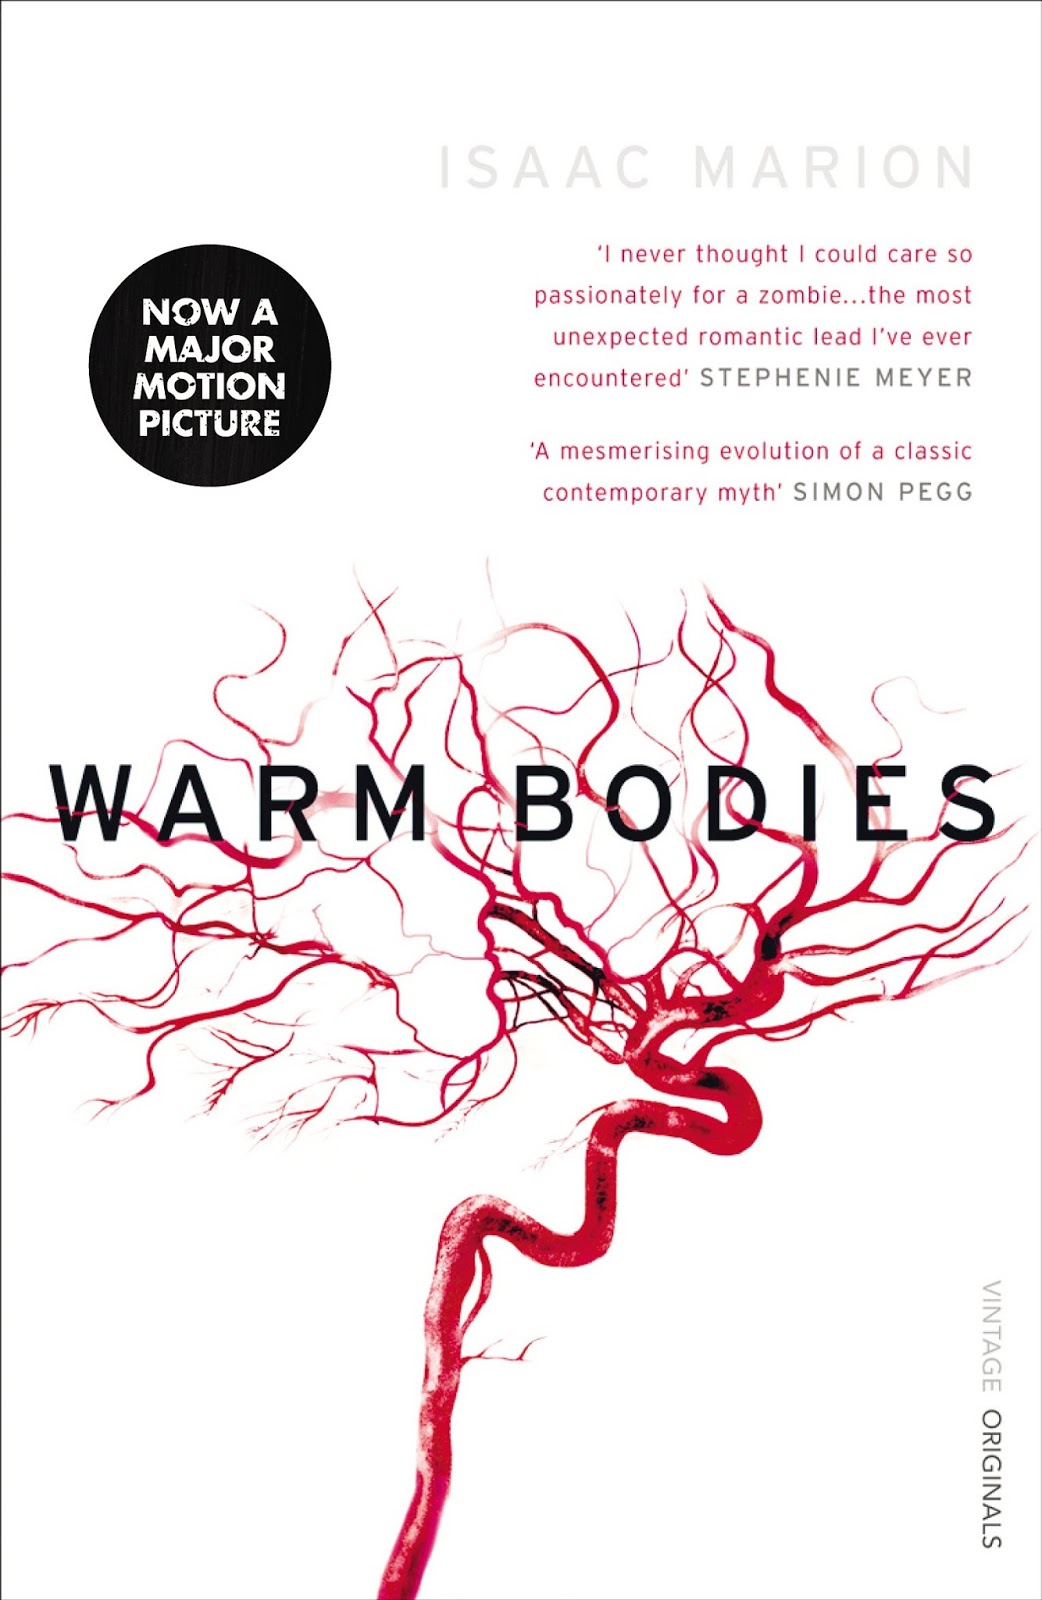 http://nothingbutn9erz.blogspot.co.at/2013/07/warm-bodies-das-buch-zum-film.html